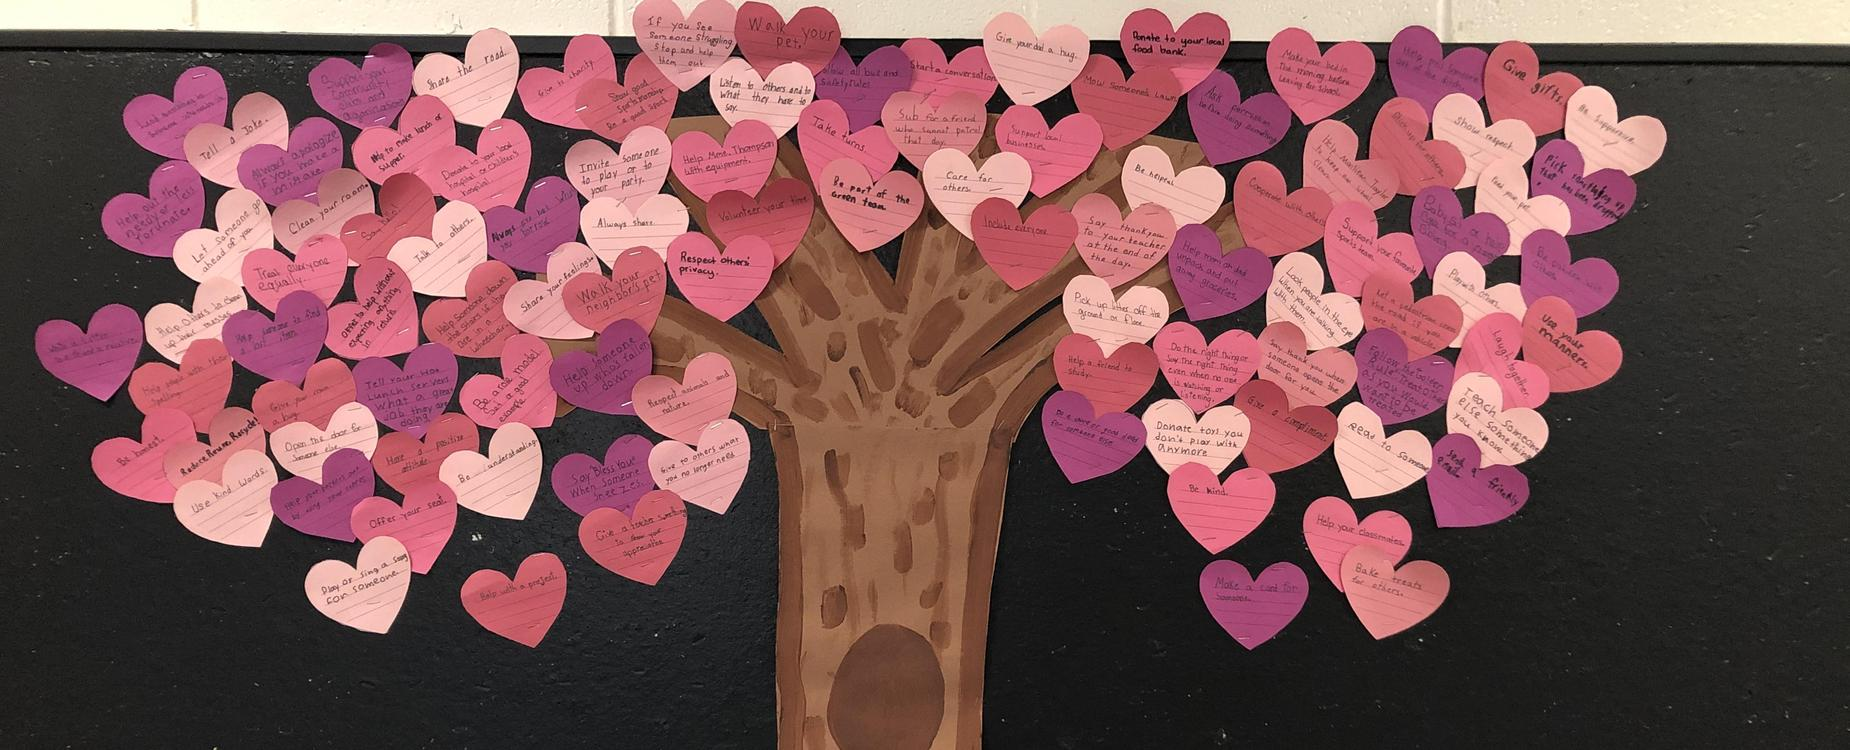 A billboard decorated with a brown tree and pink hearts as leaves.  There are 100 hearts with acts of kindness written on them.  The list is compiled by Mme. Knutson's grade 4/5 class.